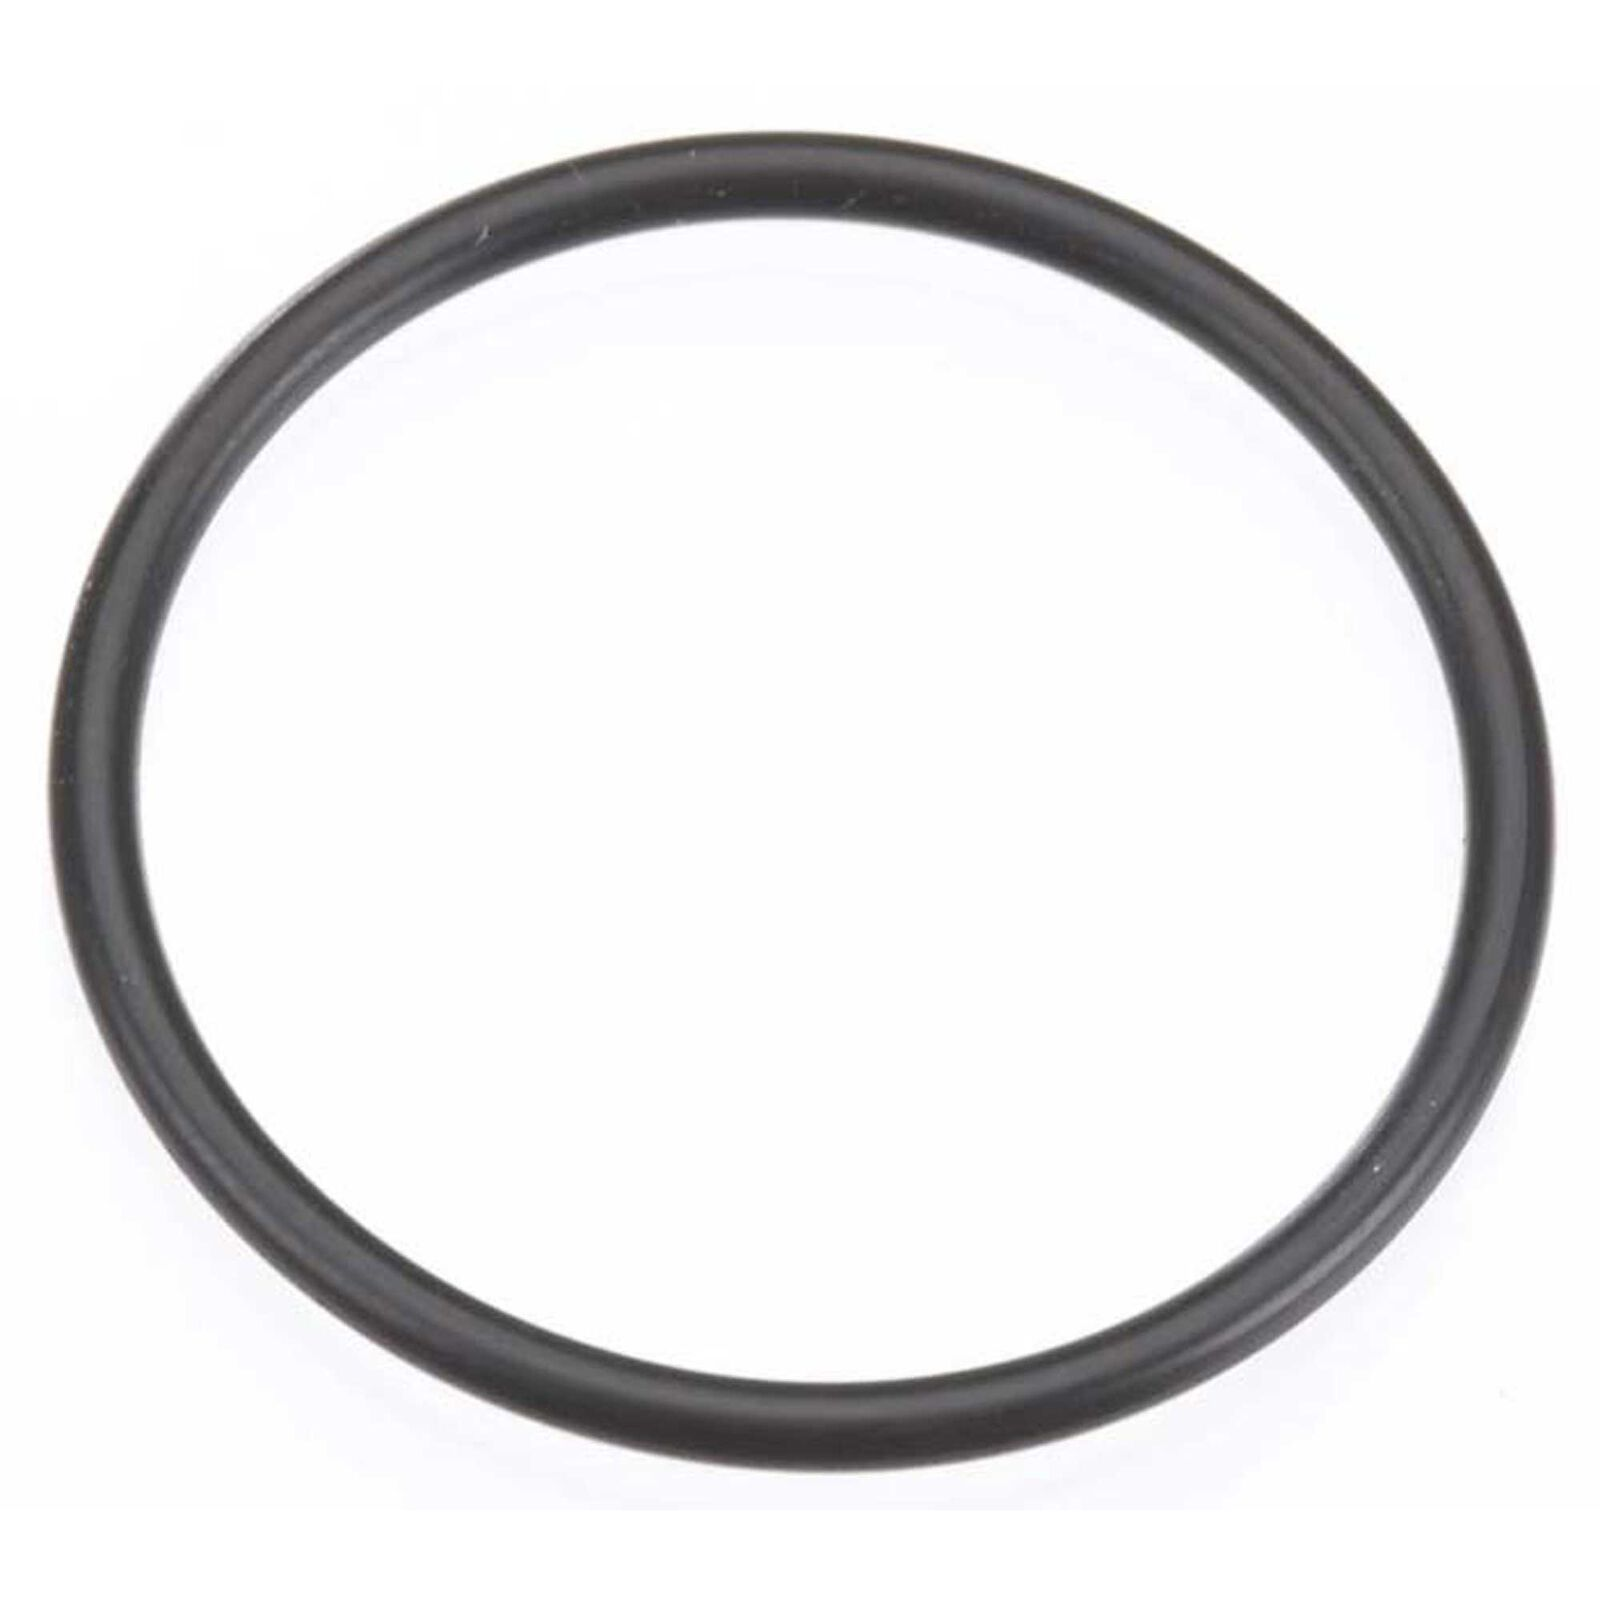 Cover Plate Gasket: 35AX